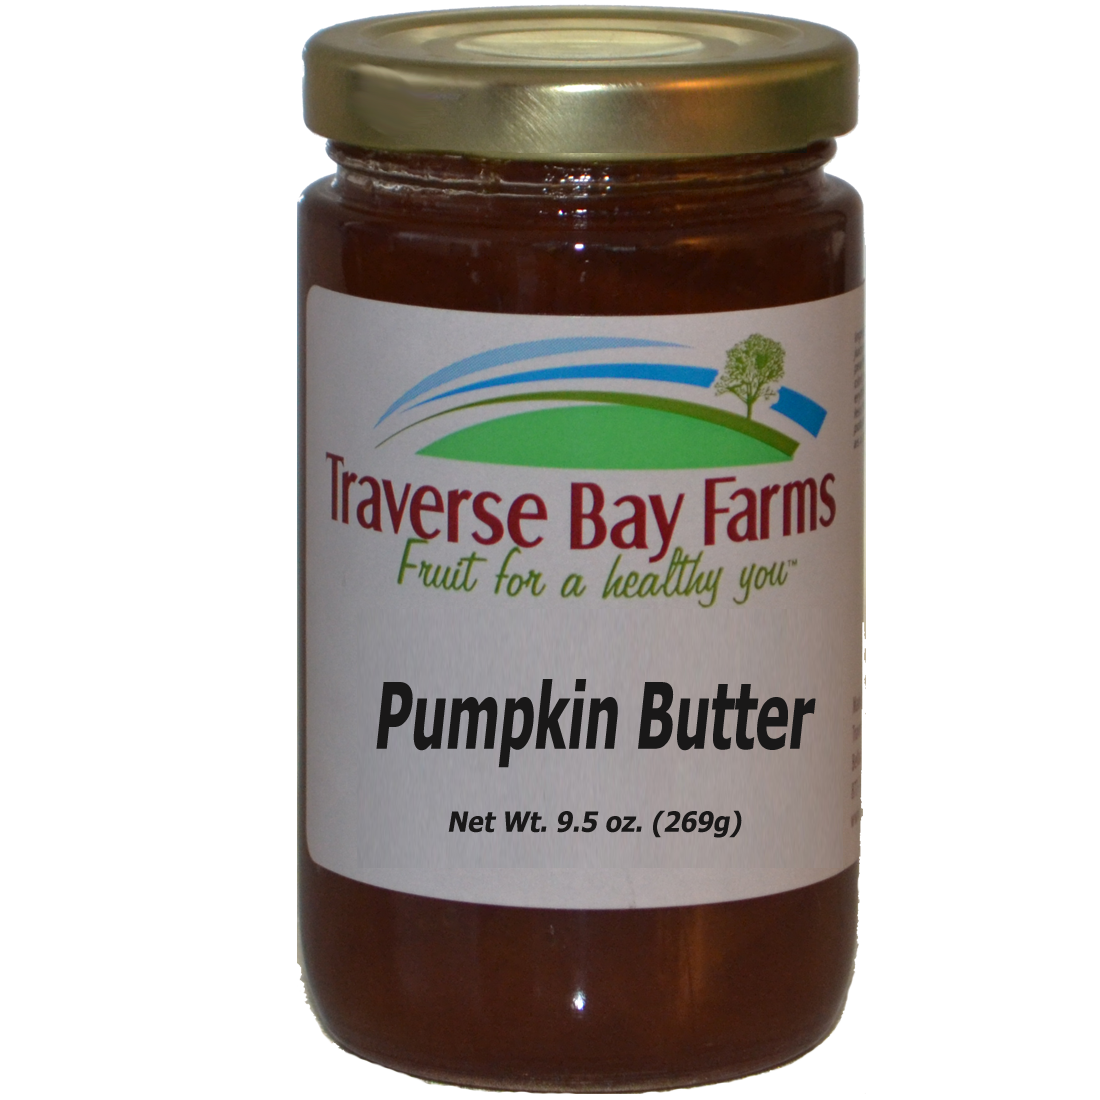 Pumpkin Butter - traversebayfarms